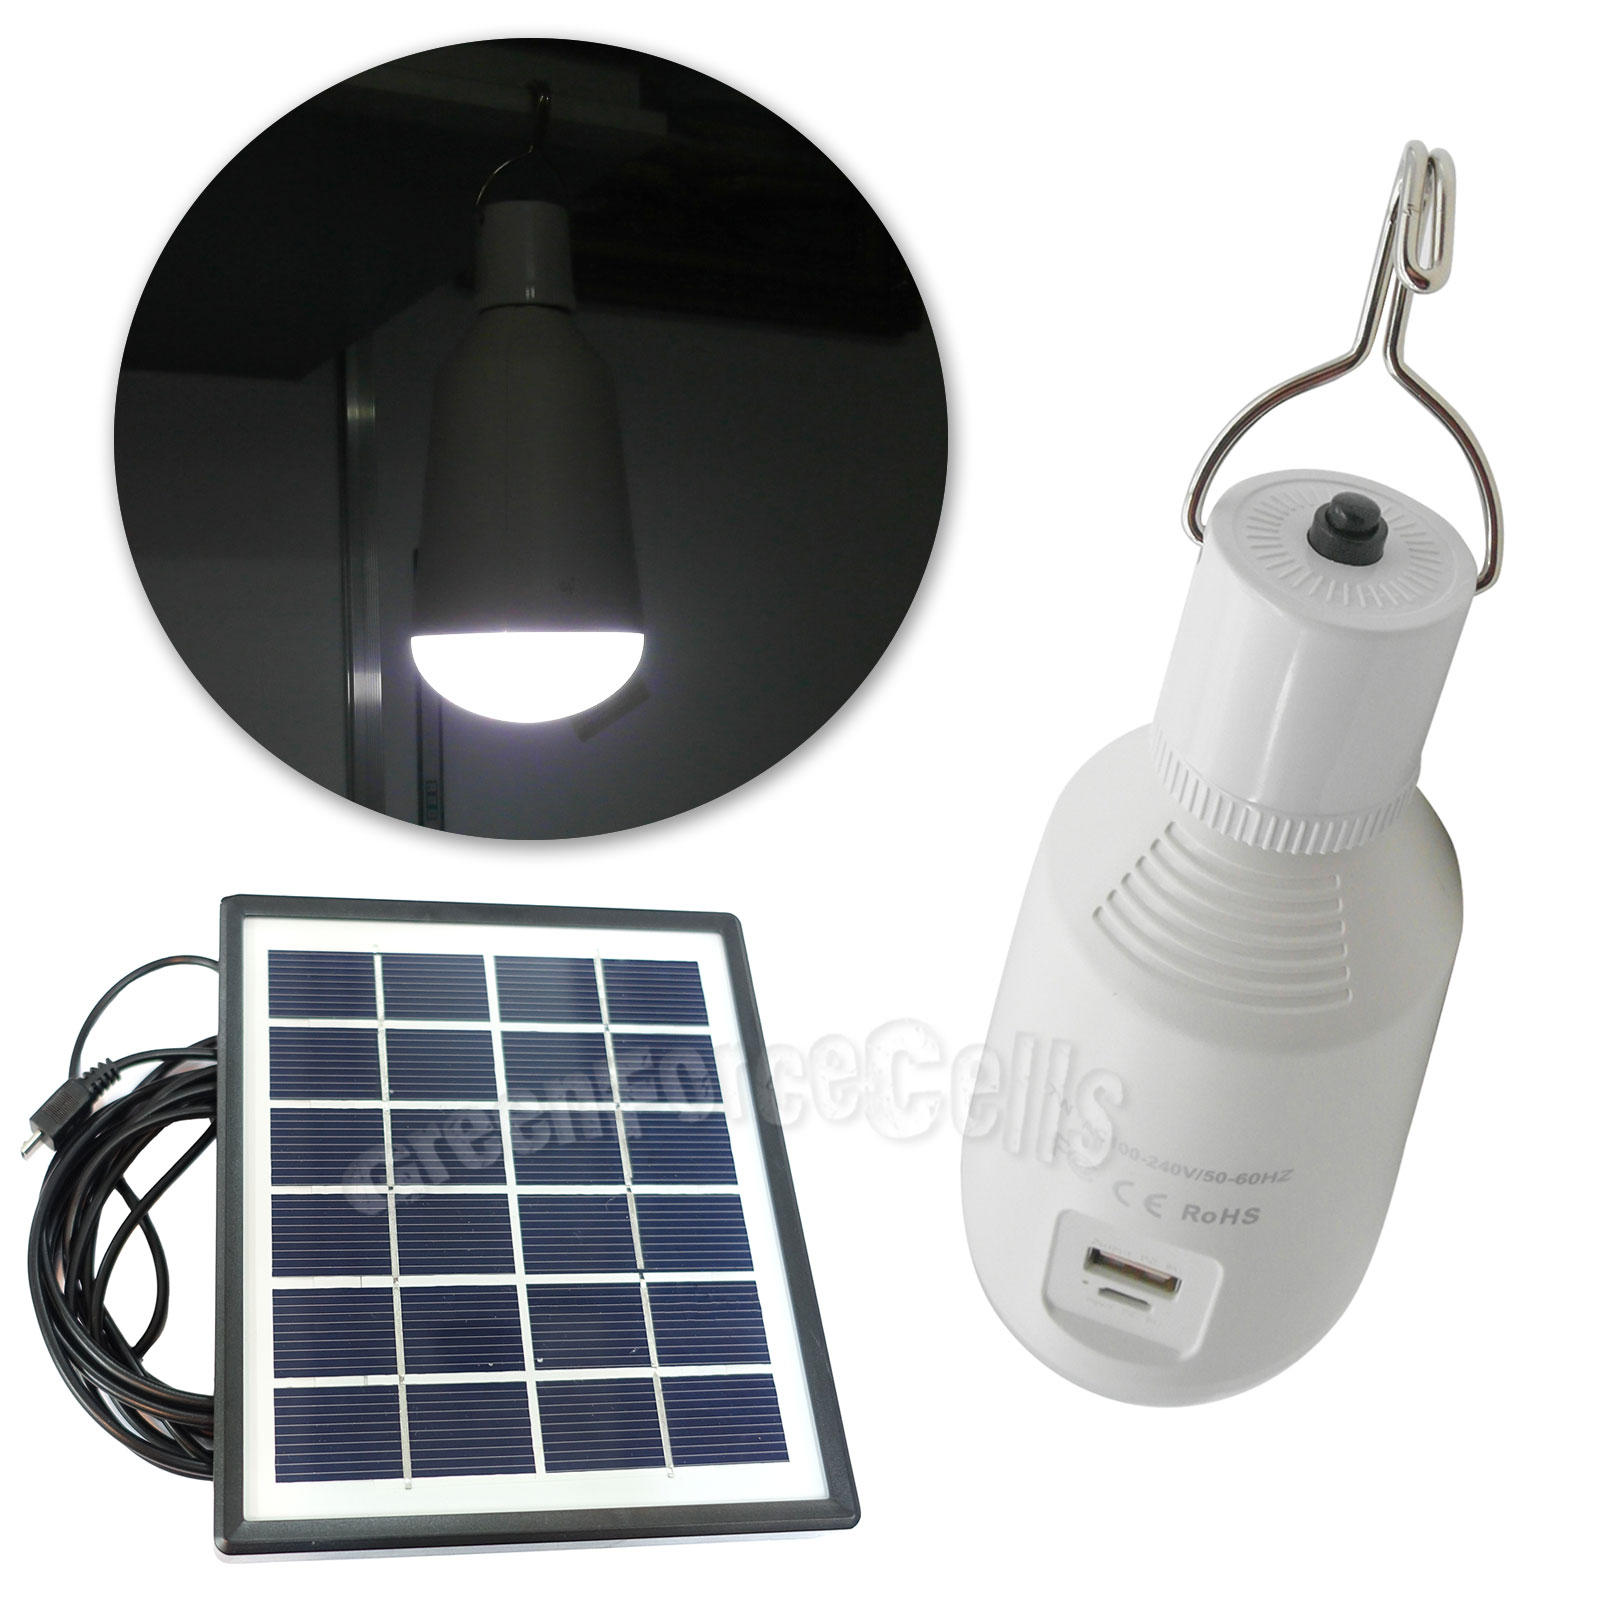 E27 Solar Battery Powered 22 Led Camping Light Outdoor: 7W Portable USB Charge LED Bulb Lamp Light W/ Hook + Solar